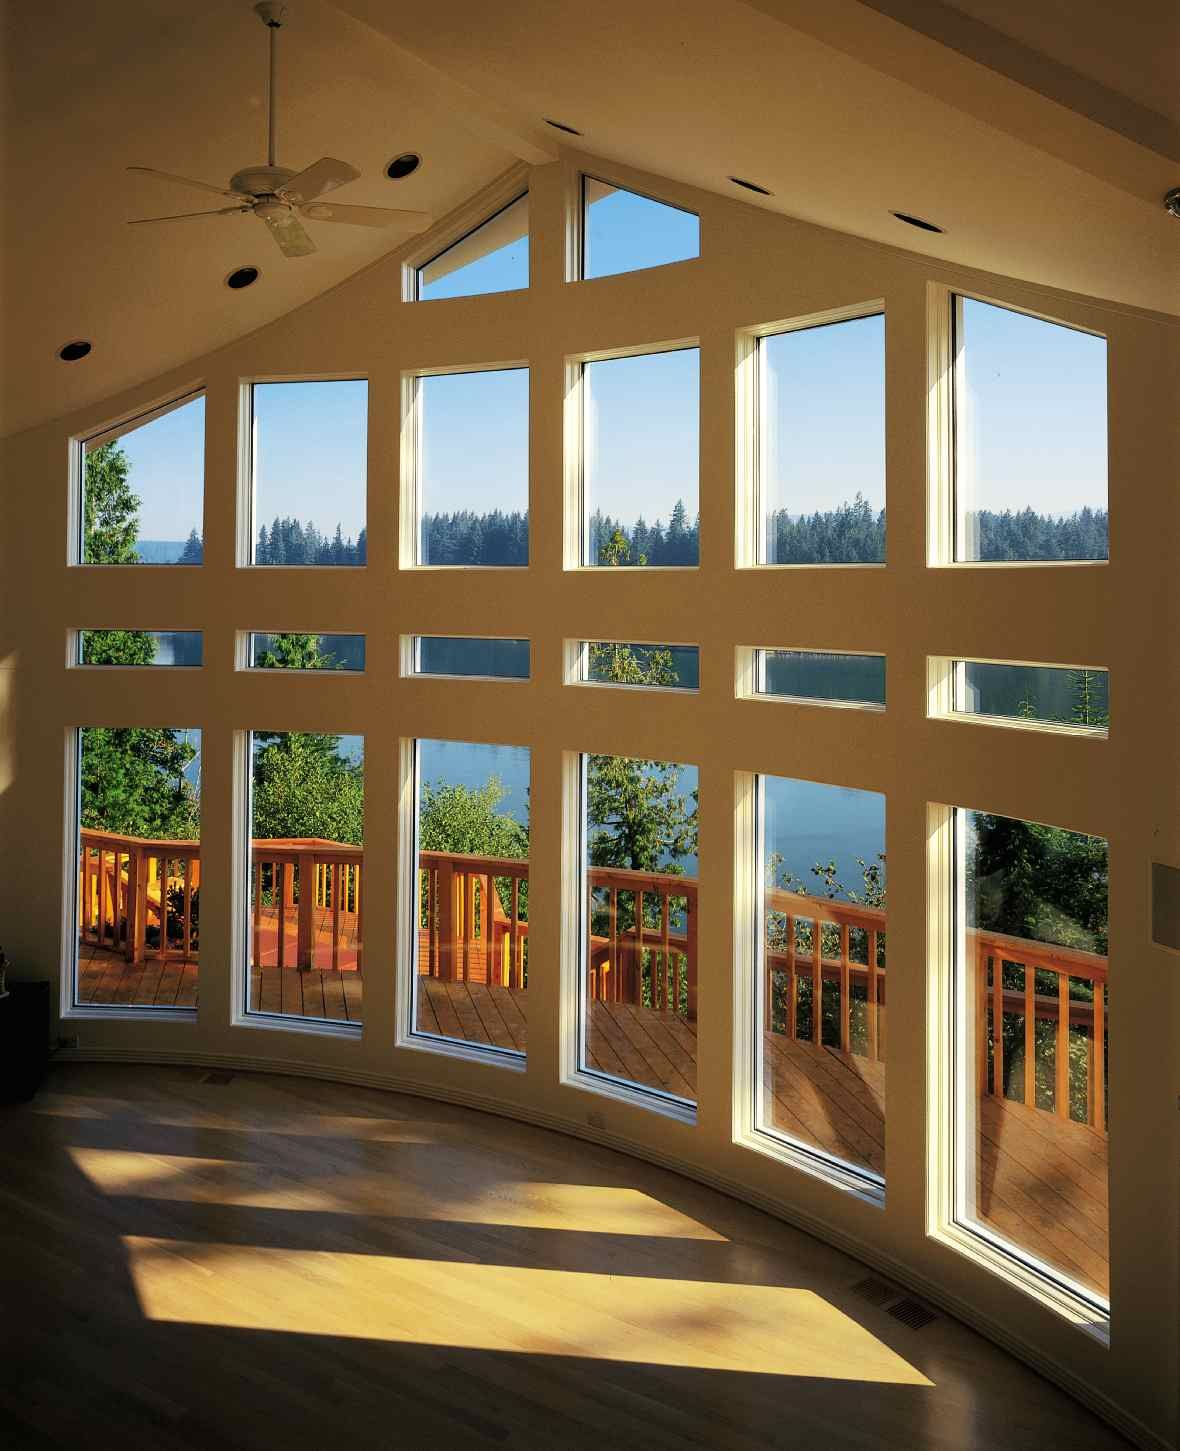 House window wall design  wow wonderful window wall  windows  pinterest  window lakes